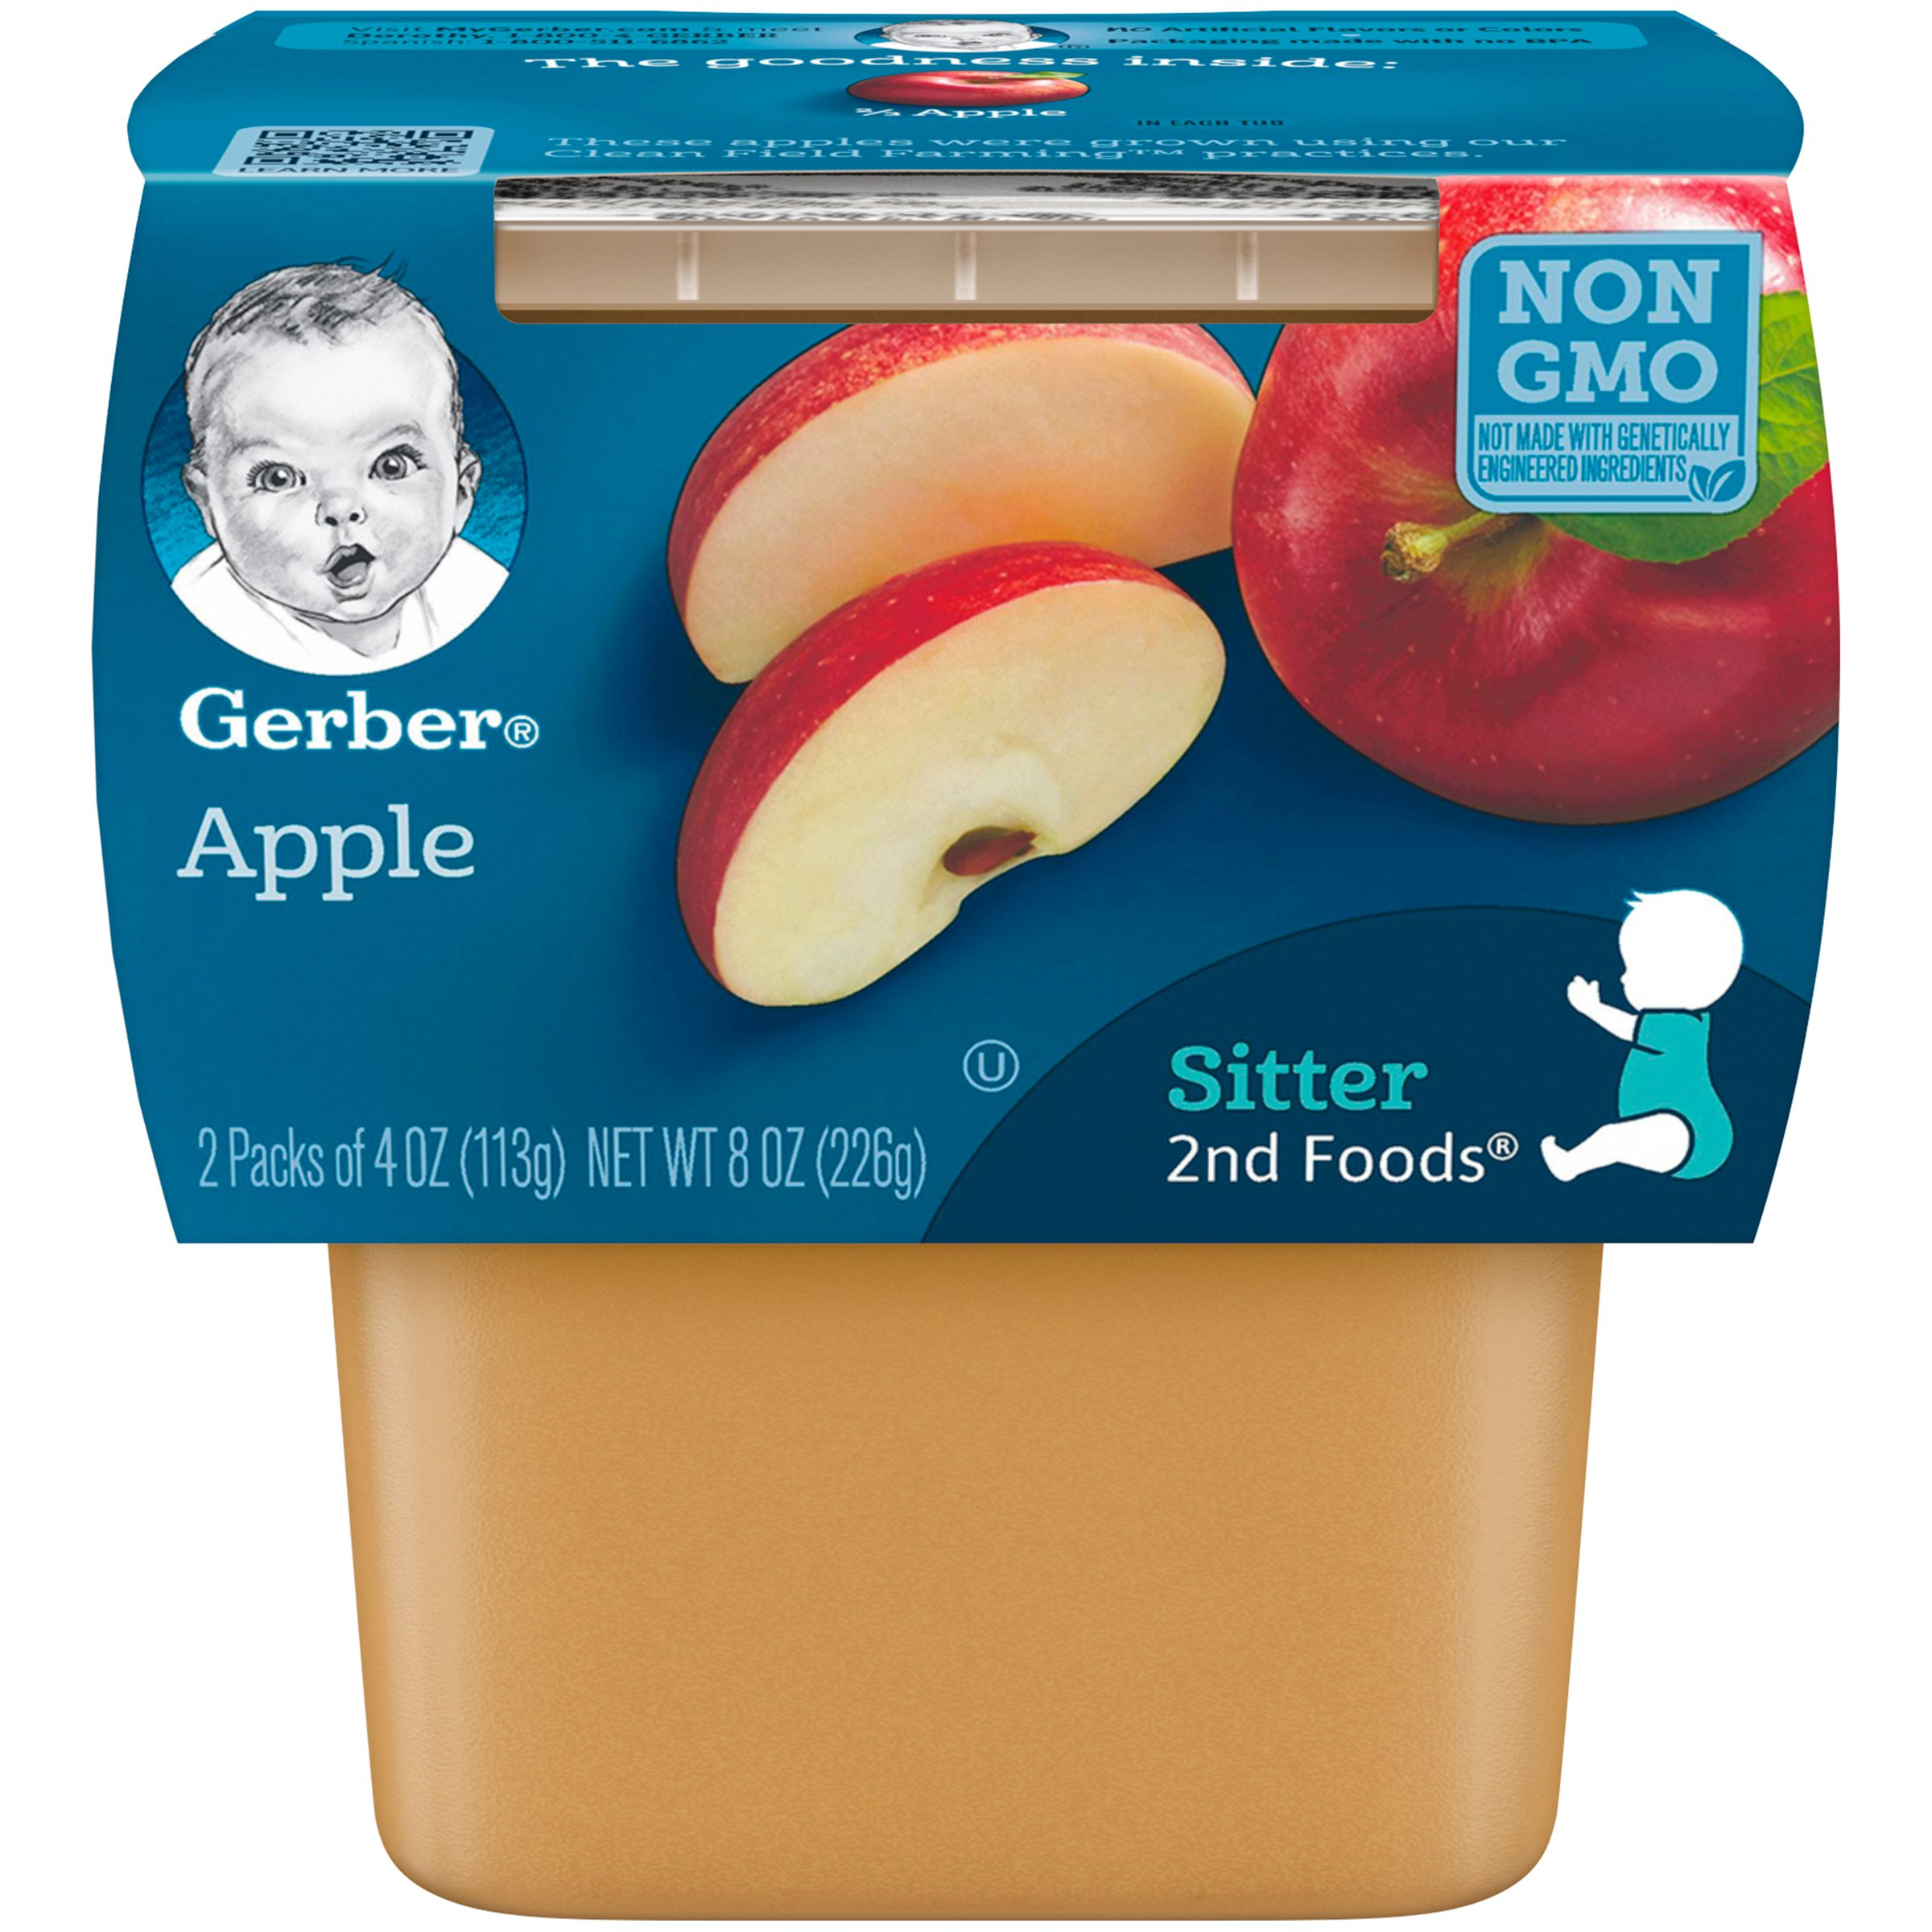 Gerber 2nd Foods Apples, 4 oz Tubs, 2 Count (Pack of 8) by Gerber